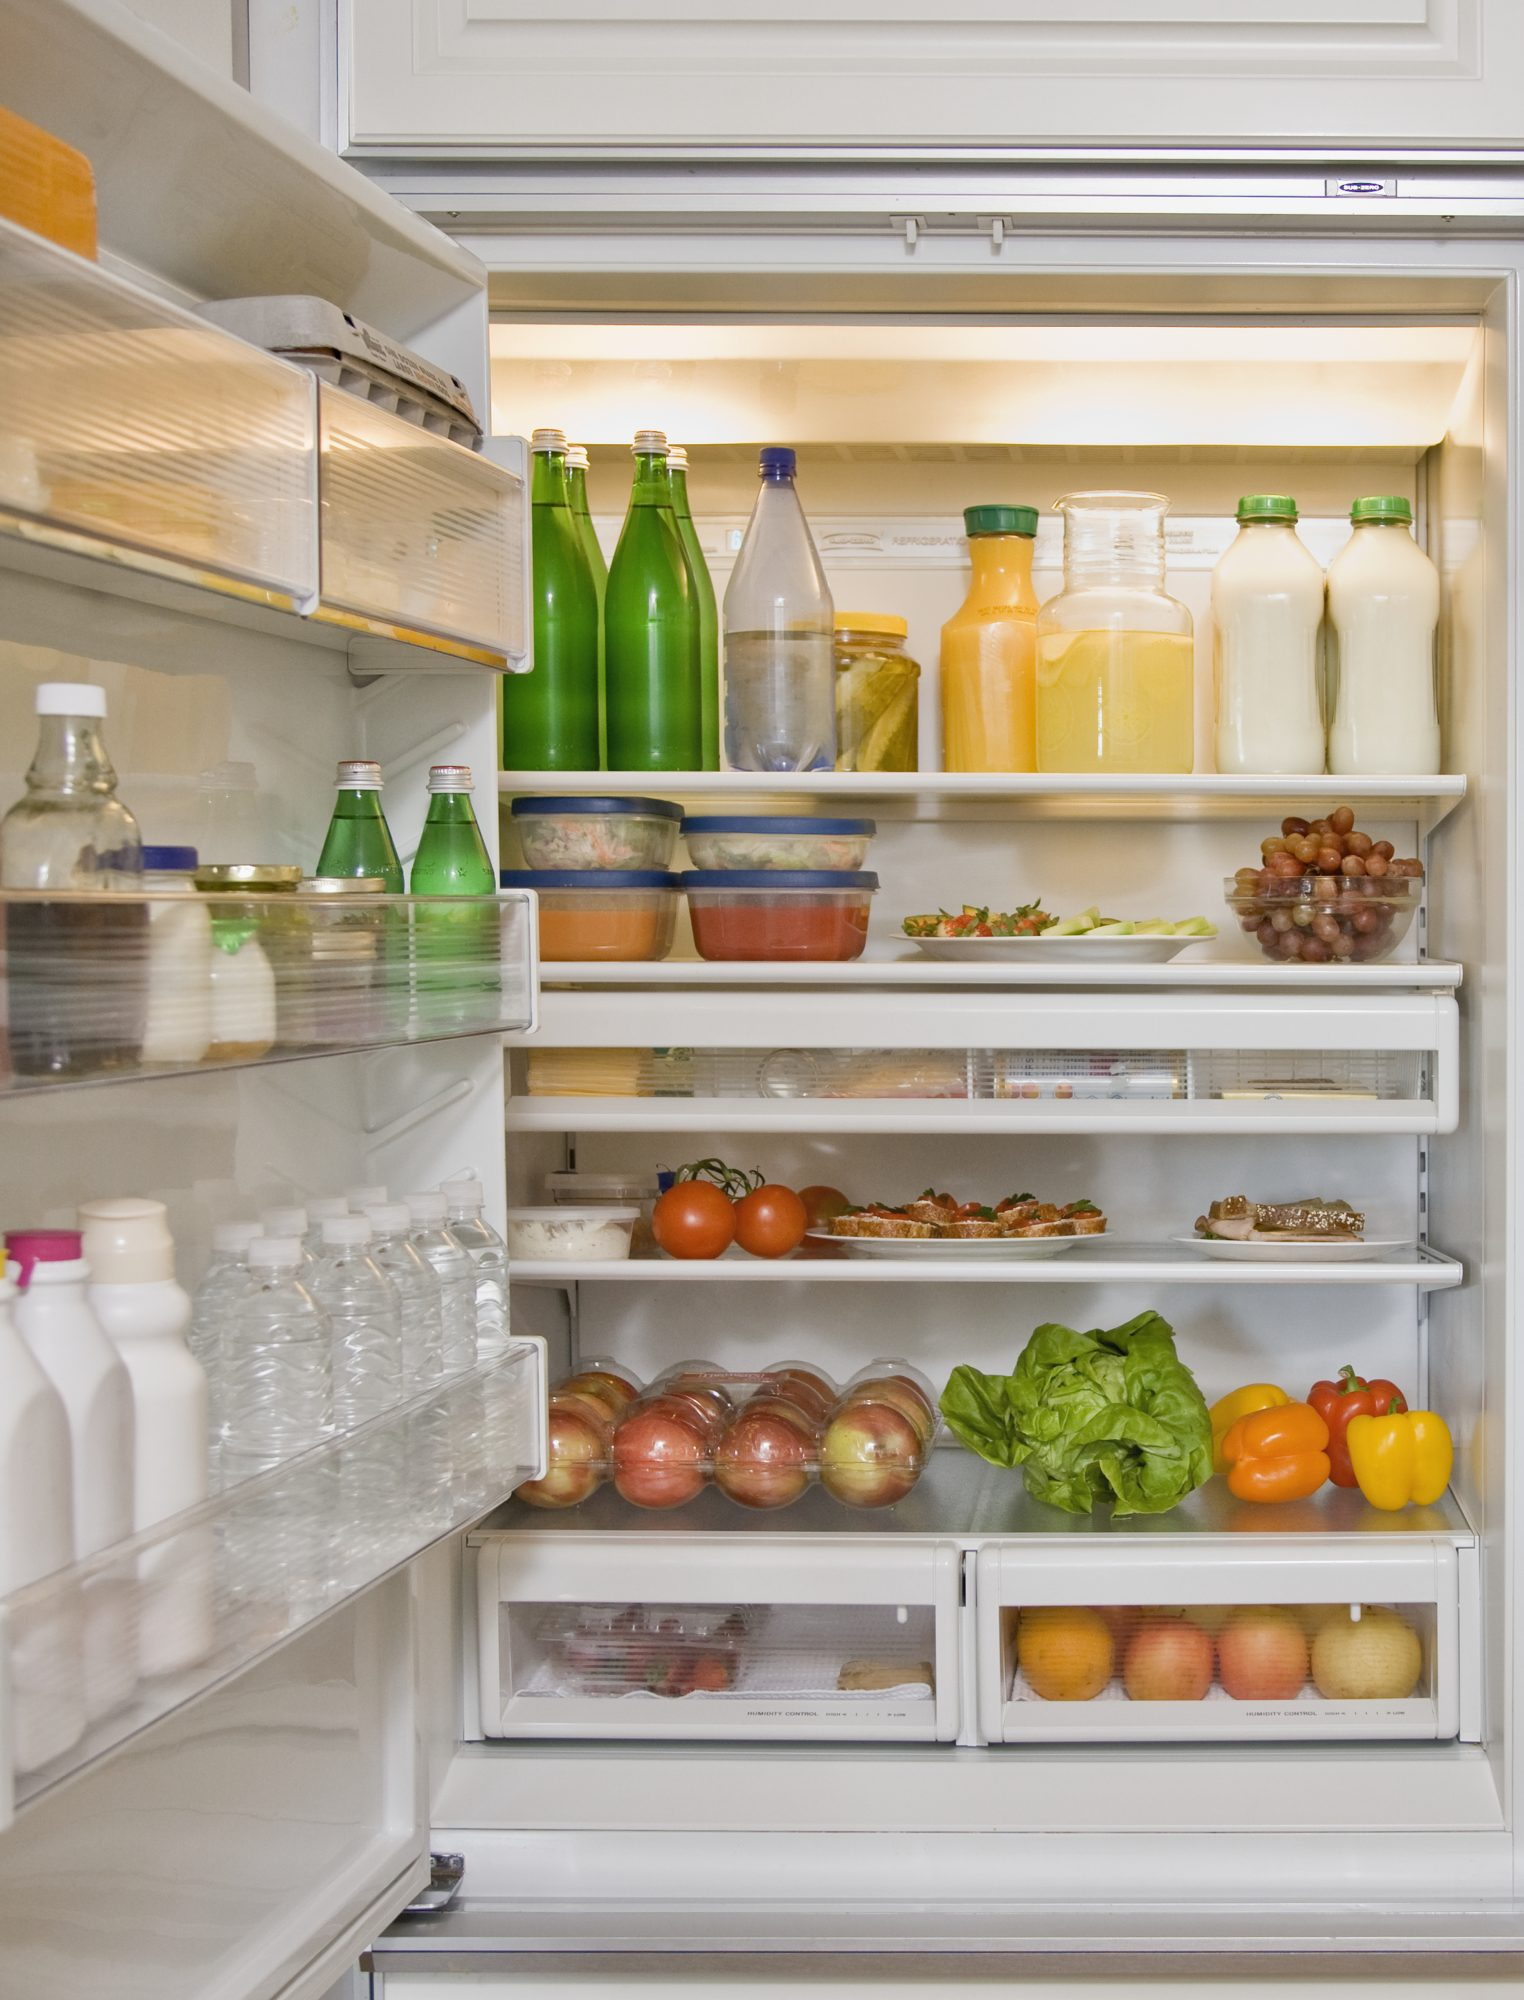 5 Things You Should Refrigerate (But Probably Aren't)